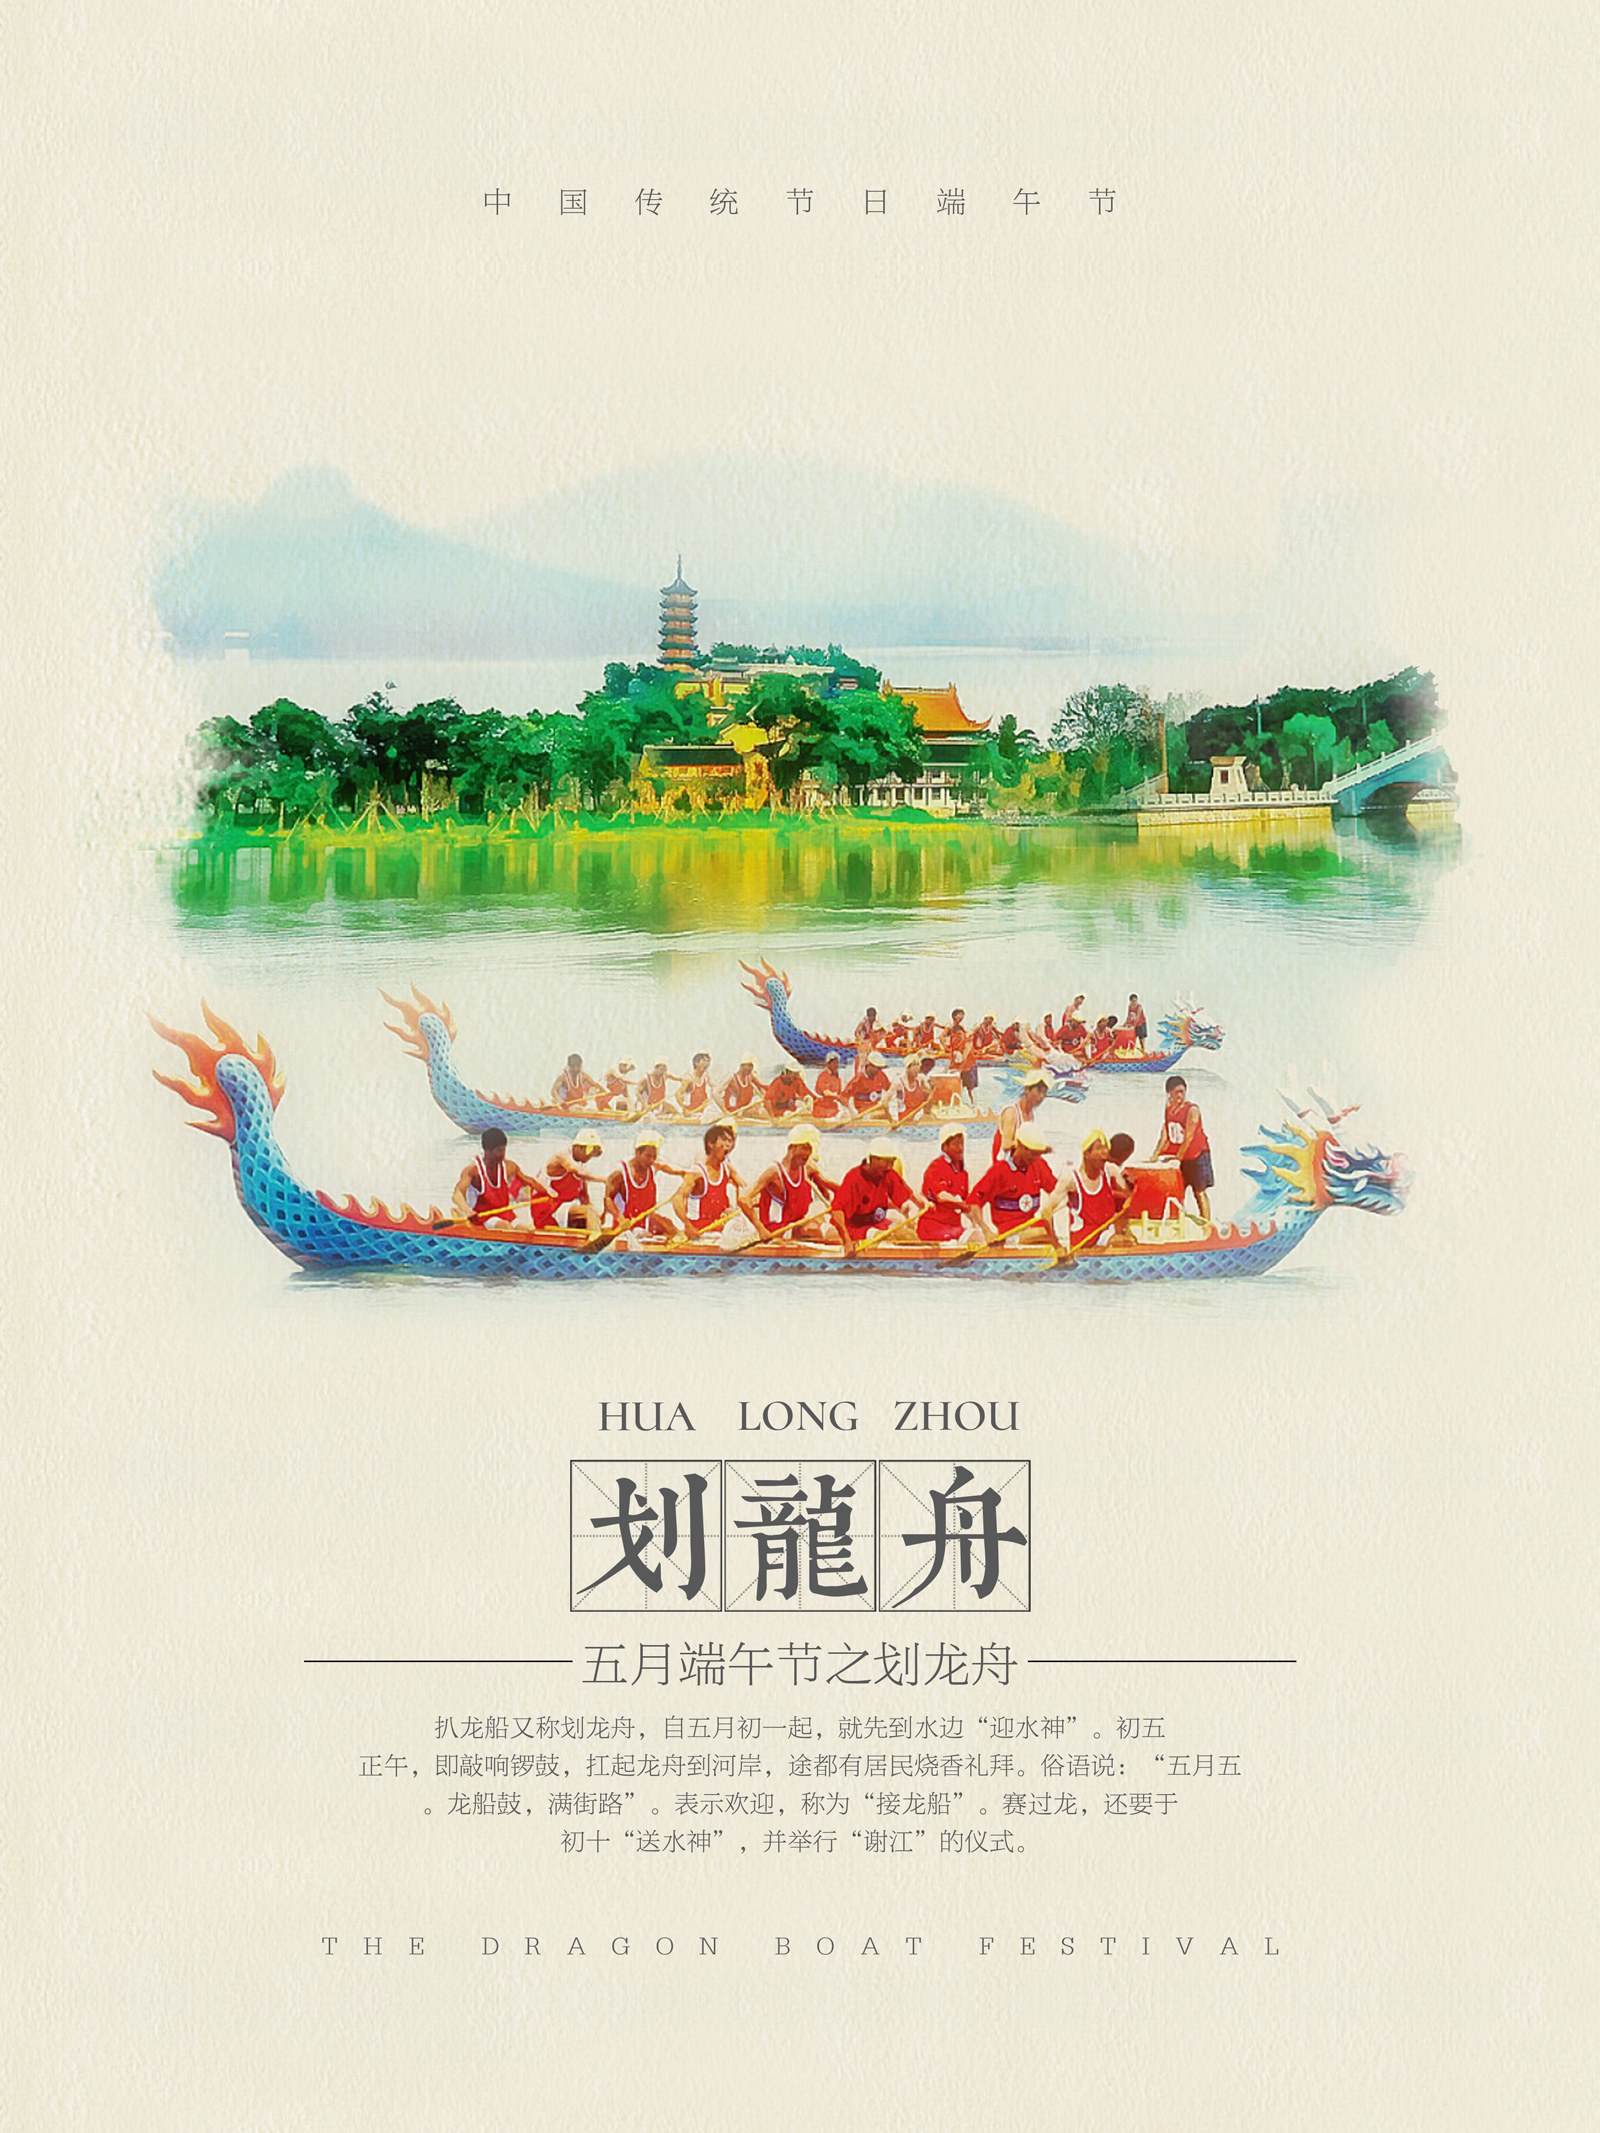 Chinese Traditional Festival Dragon Boat Festival Celebration PSD File Free Download